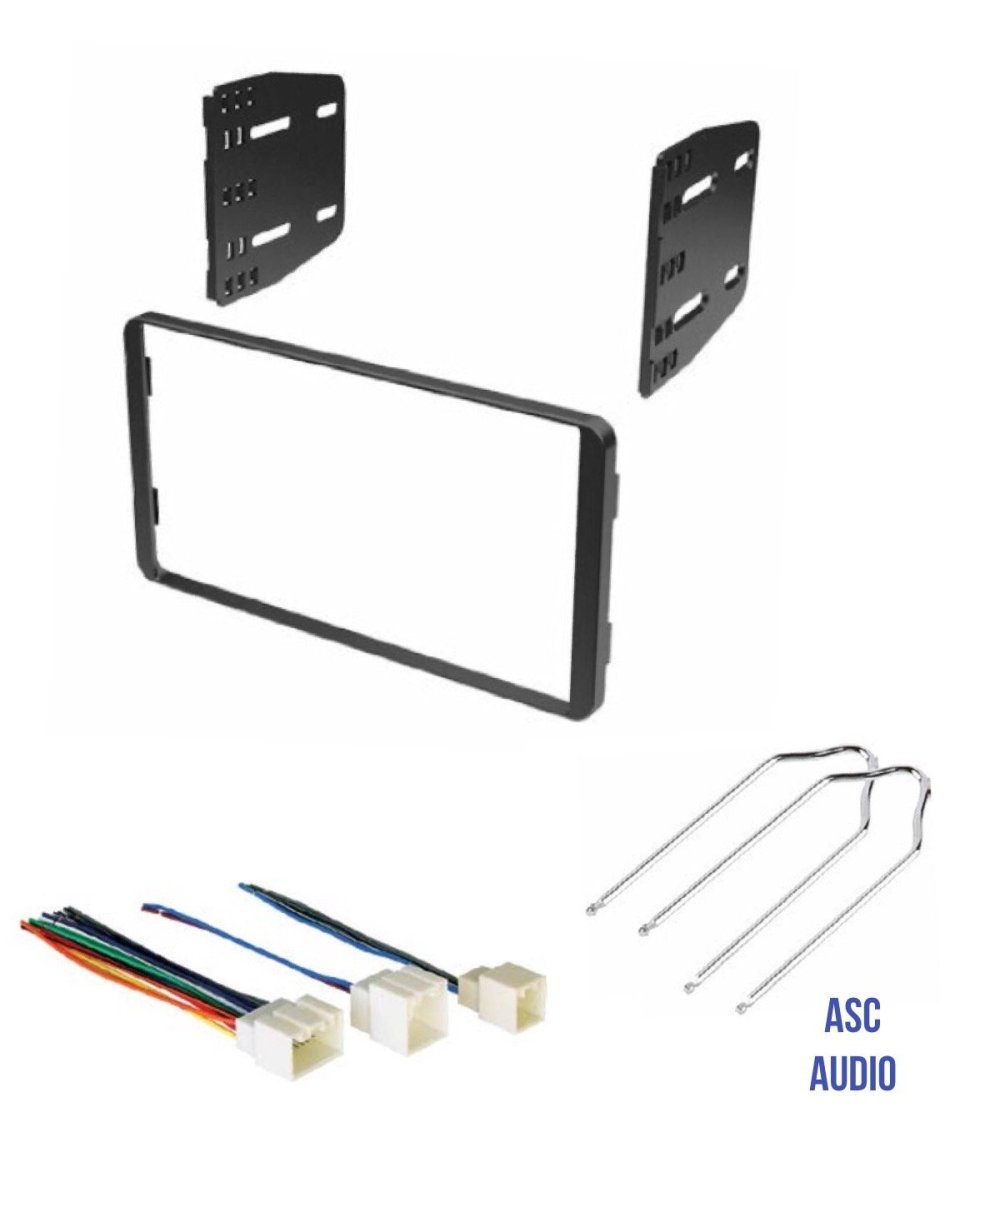 medium resolution of get quotations asc car stereo radio install dash kit wire harness and radio tool to install